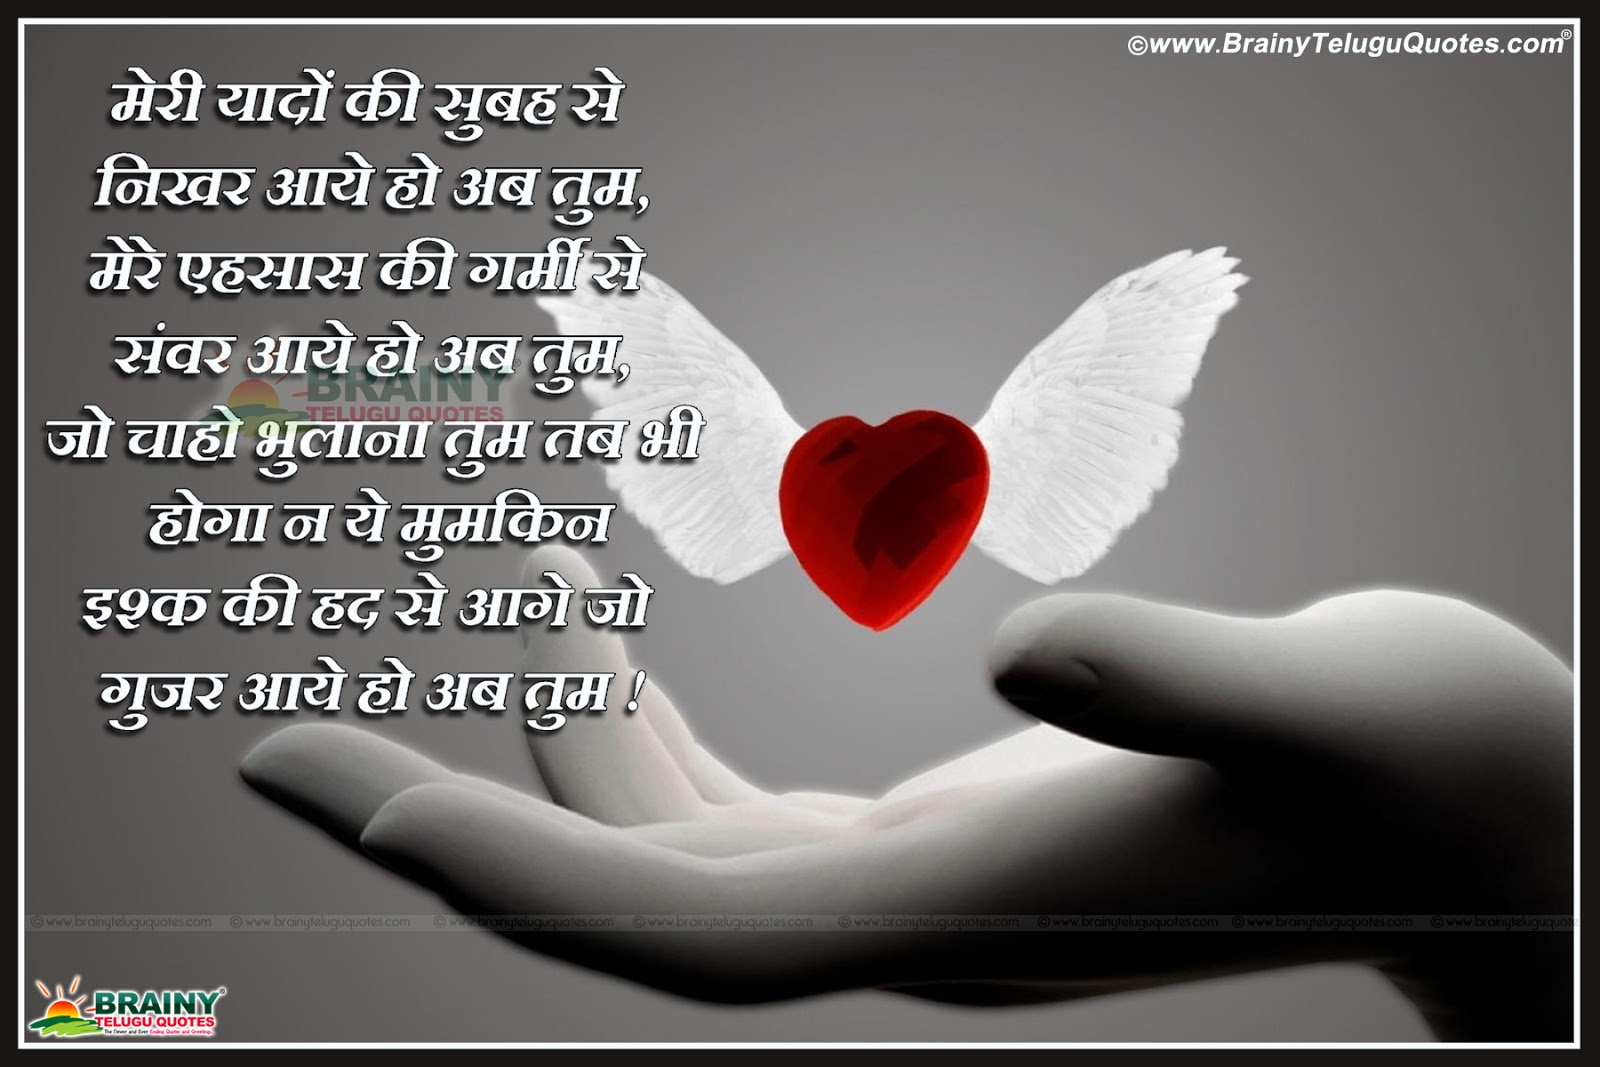 Nice images of love with quotes hindi wallpapersjpg best love shayari in hindi with hd wallpapers brainyteluguquotes thecheapjerseys Image collections